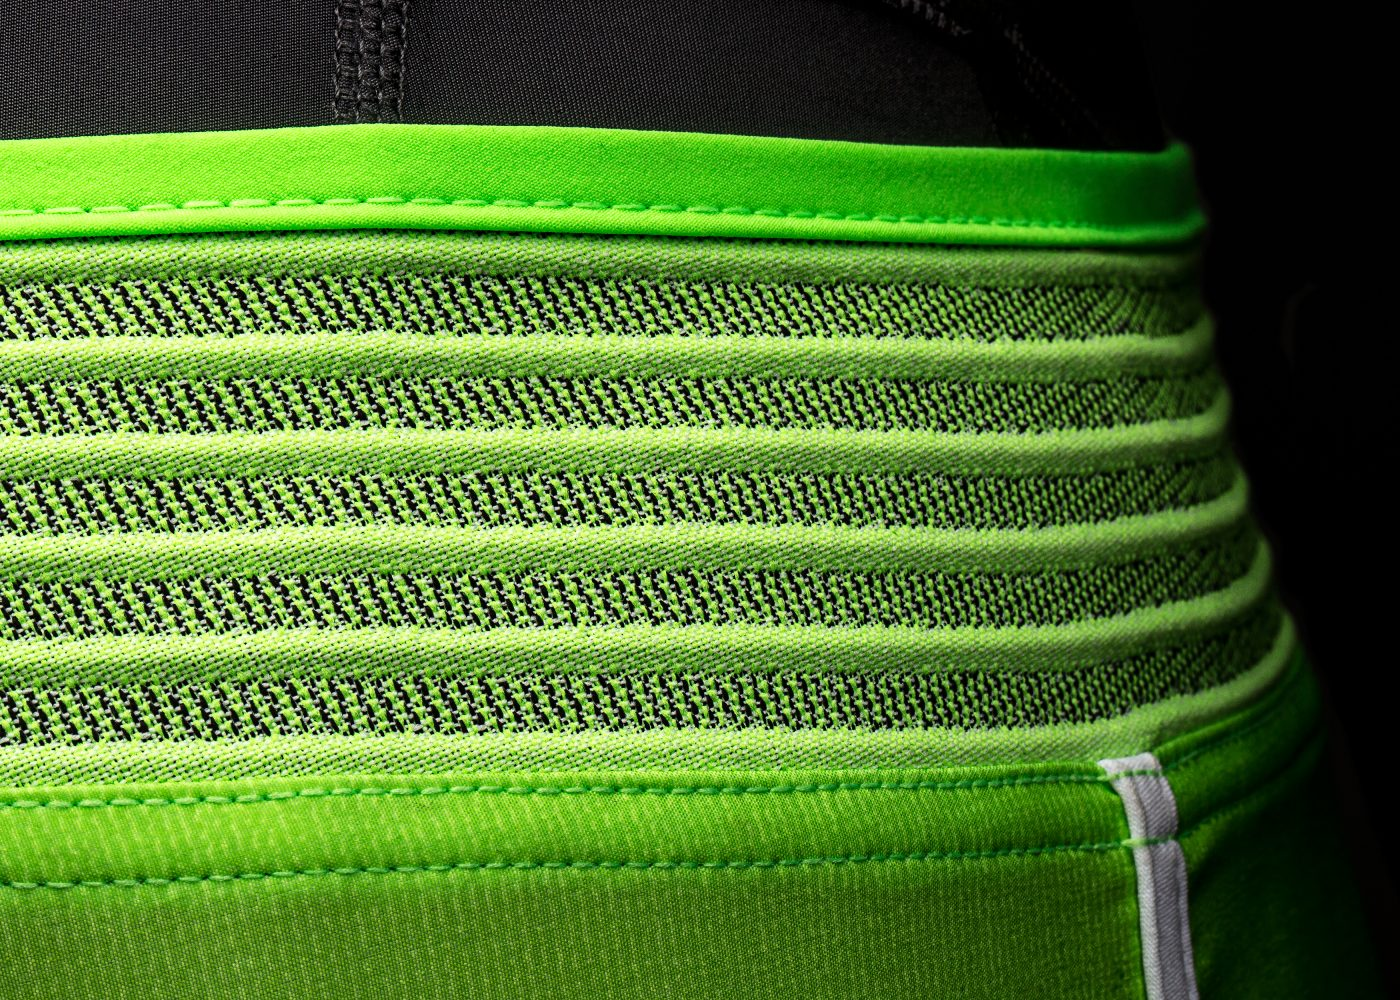 HYPERWEAVE_DETAIL_2_original